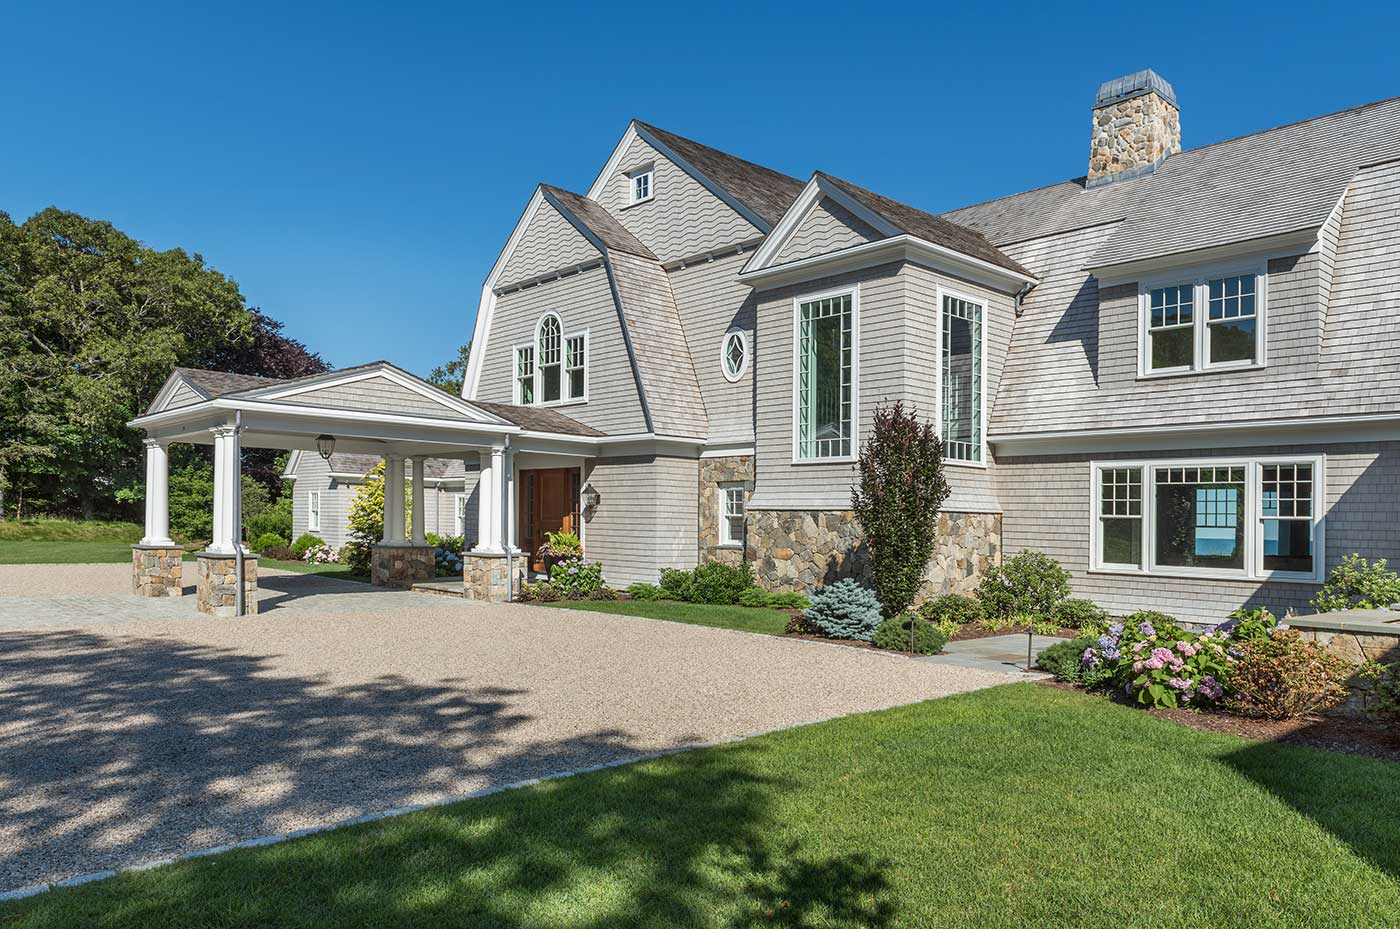 Cape Cod custom home with a porte-cochère by builder Rogers & Marney